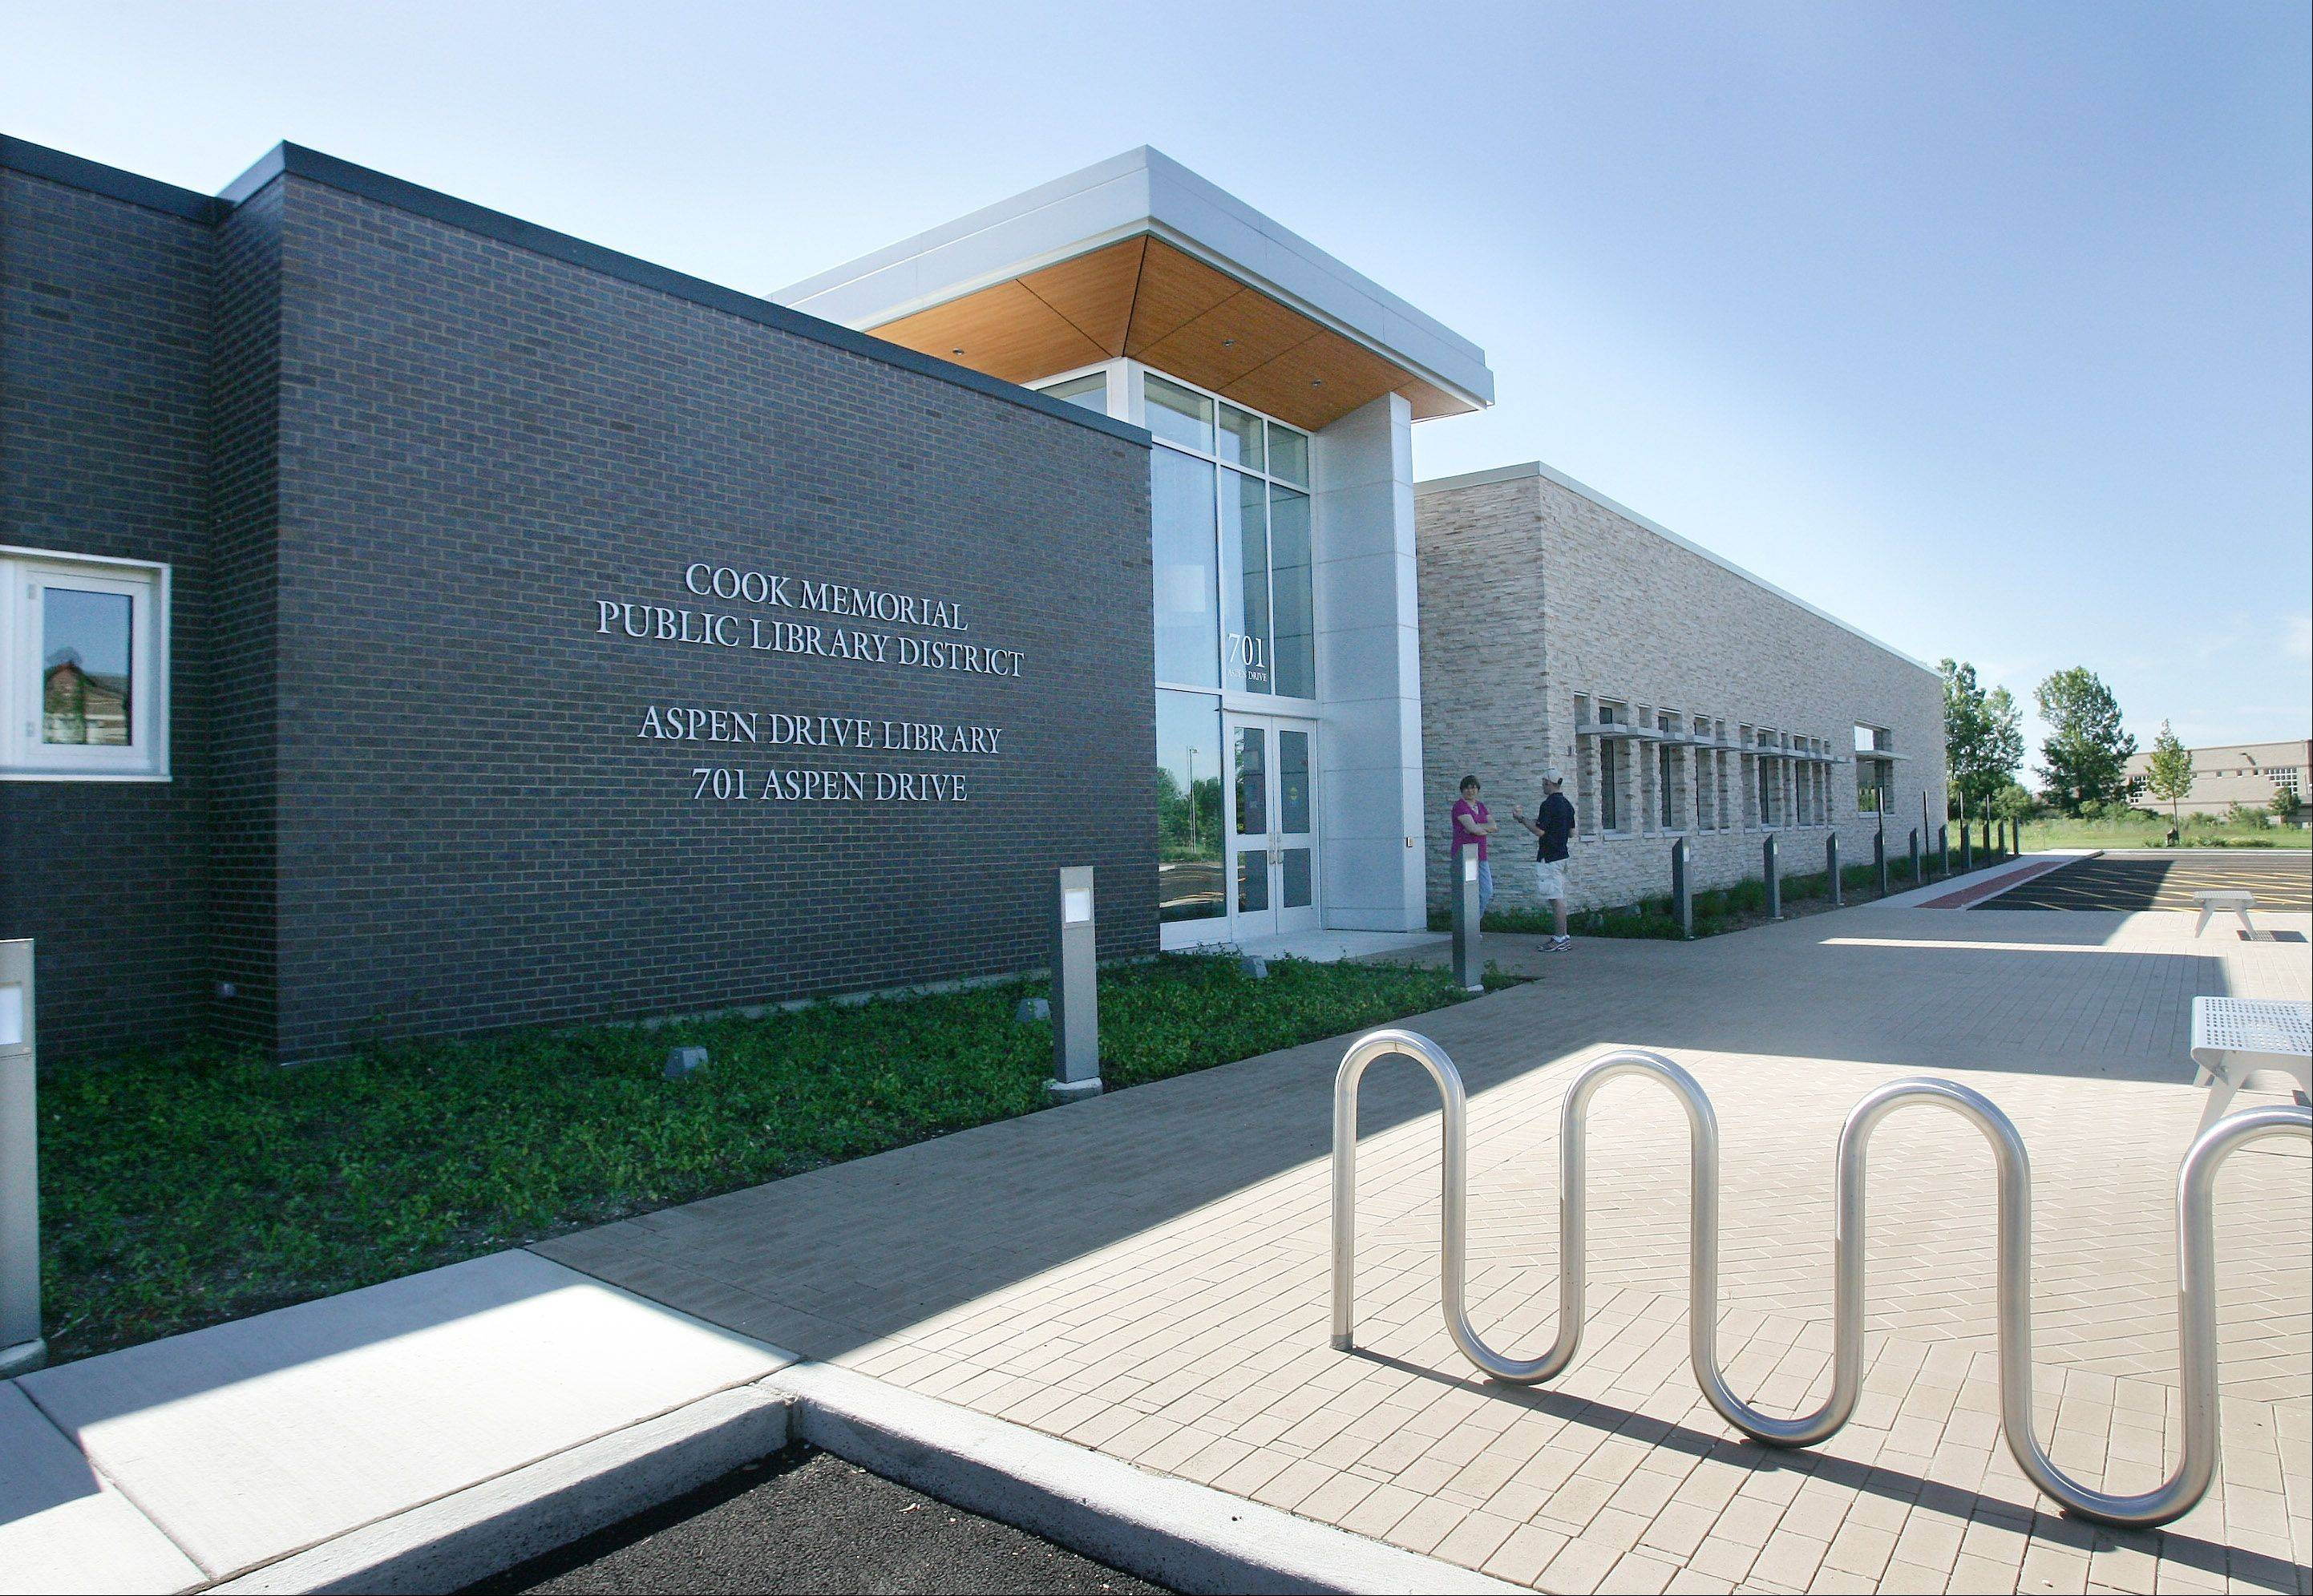 Cook Memorial Public Library District officials are considering acquiring land for a parking lot expansion at the Aspen Drive Library in Vernon Hills.